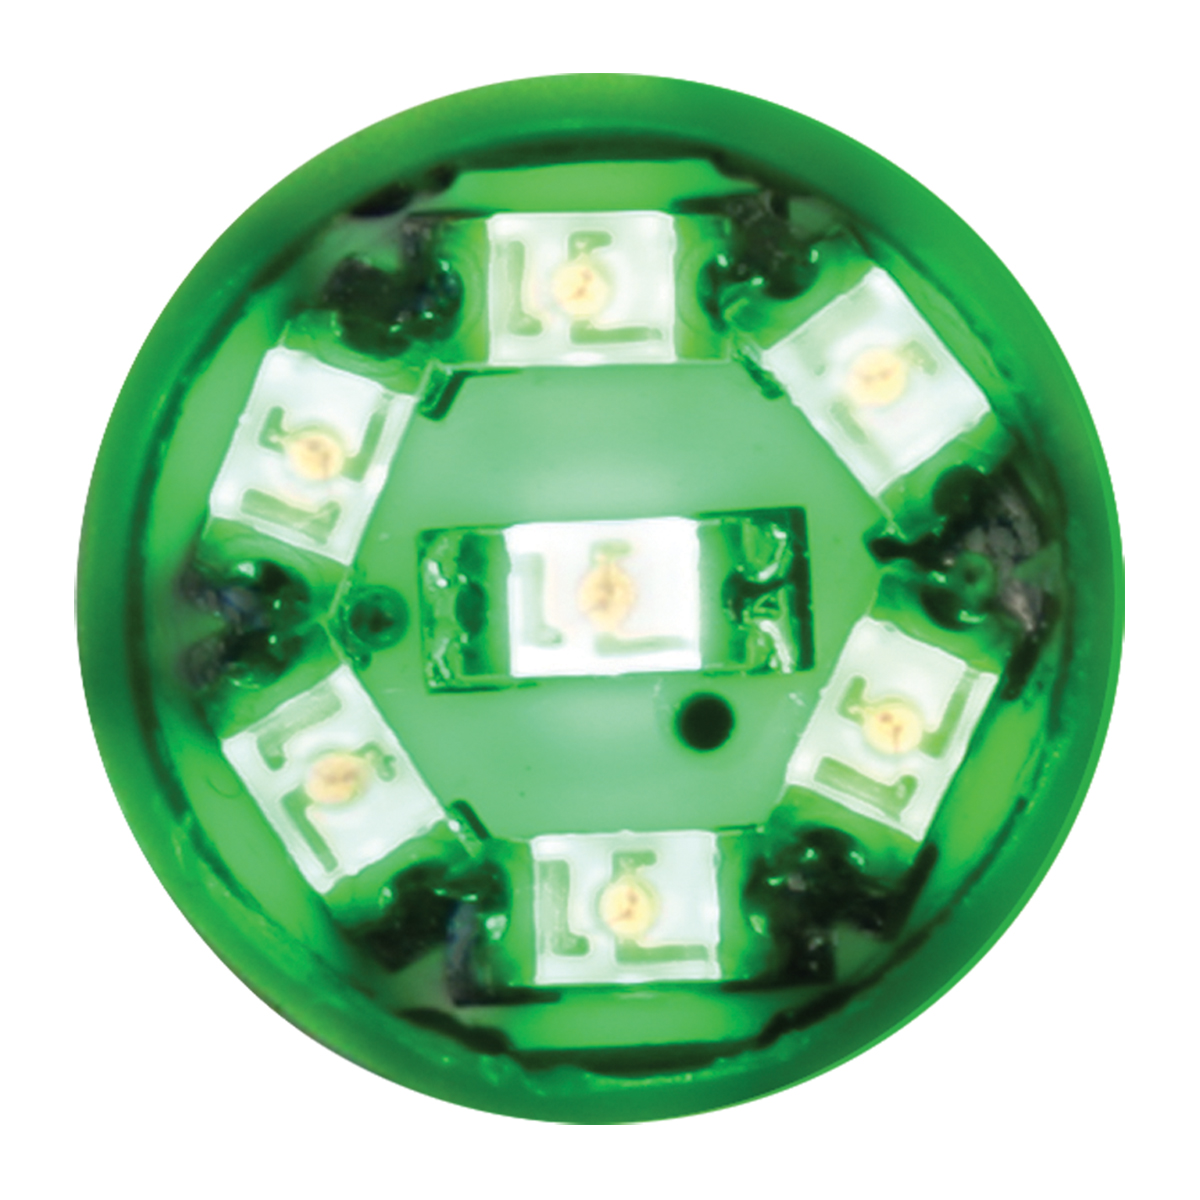 74902 Green 194/168 Dome Type 7 LED Light Bulb